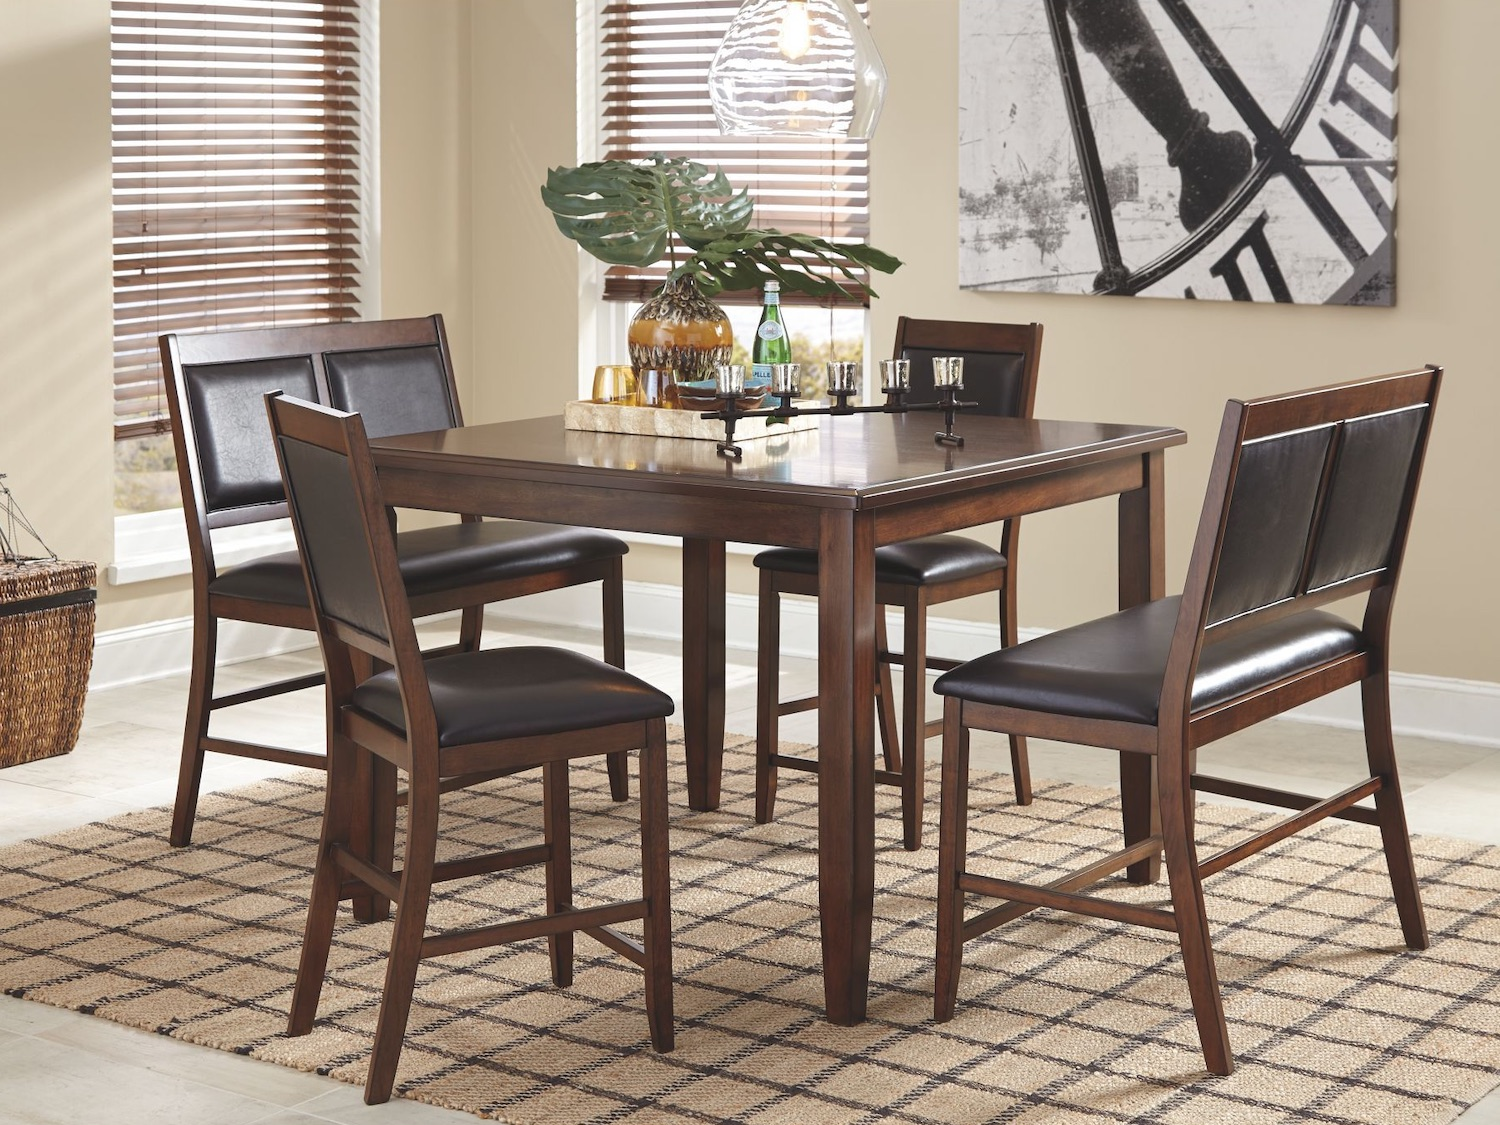 Meredy 5 PC DRM Counter Table Set, D395-323, Dining Room Sets, Meredy 5 PC DRM Counter Table Set from Ashley by Midha Furniture serving Brampton, Mississauga, Etobicoke, Toronto, Scraborough, Caledon, Cambridge, Oakville, Markham, Ajax, Pickering, Oshawa, Richmondhill, Kitchener, Hamilton, Cambridge, Waterloo and GTA area